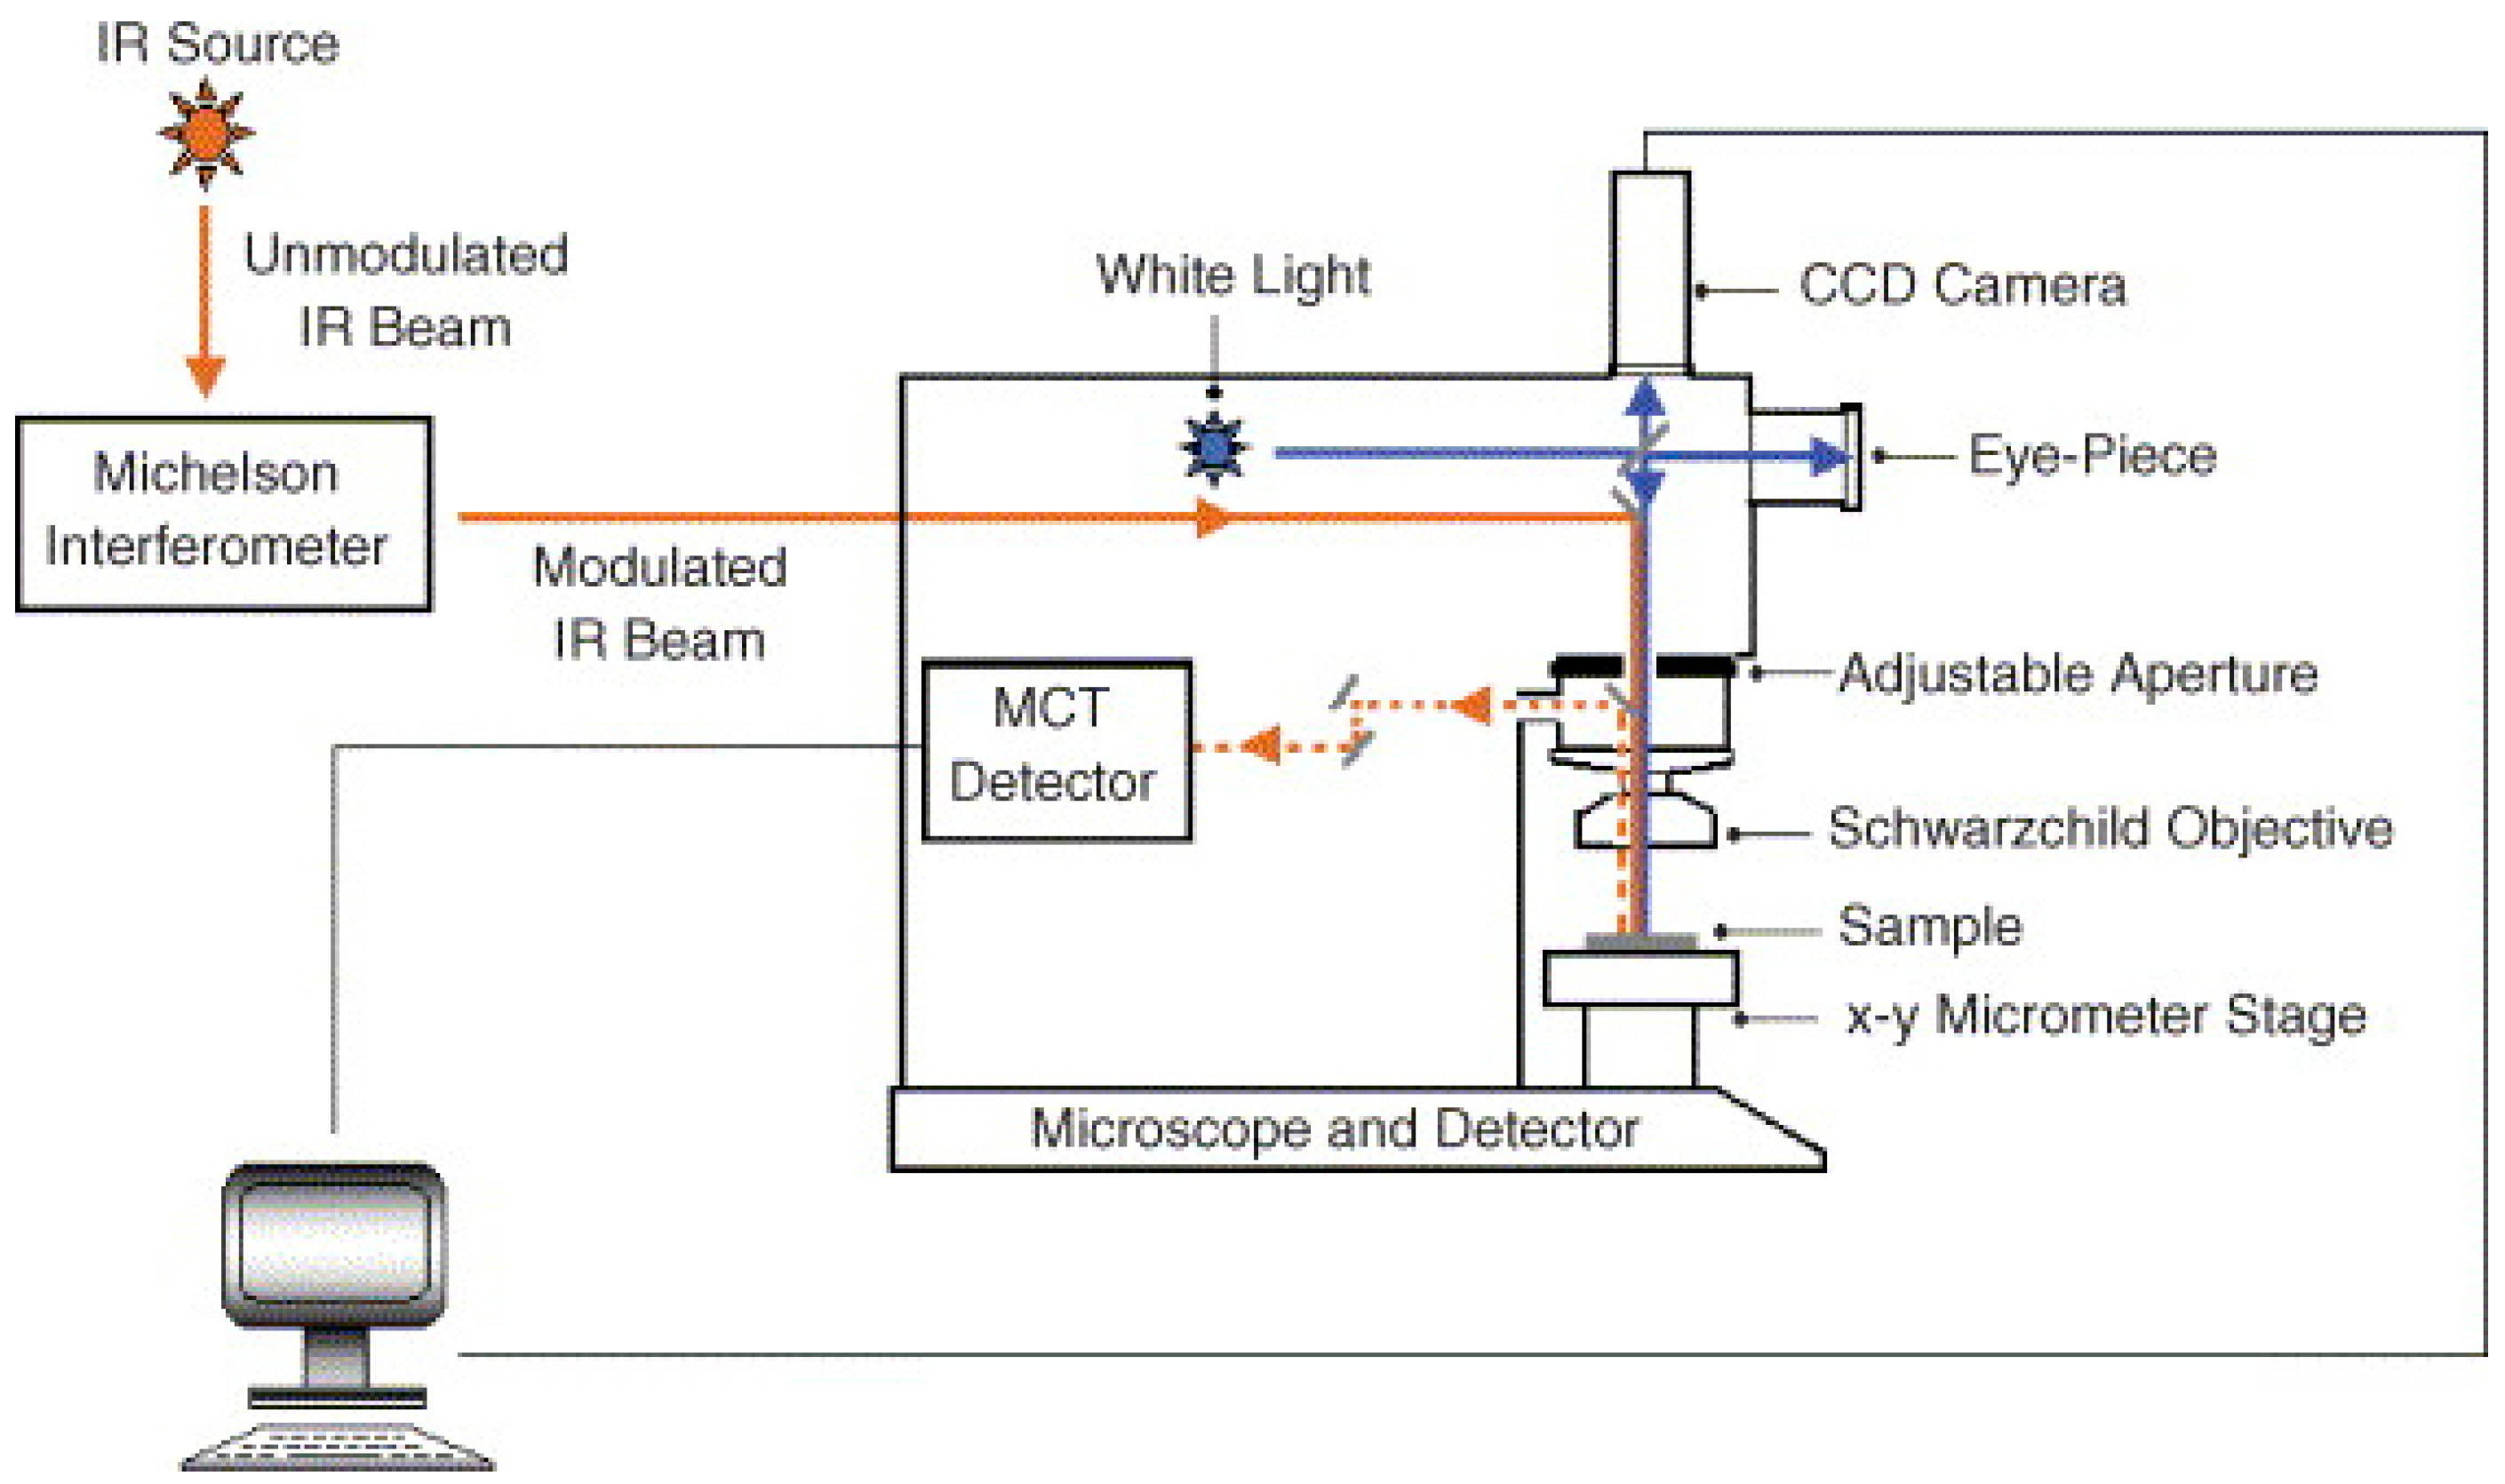 Molecules Free Full Text A Review Of Mid Infrared And Near Tree Likewise Metal Detector Circuit On Schematic Pdf 22 00168 G003